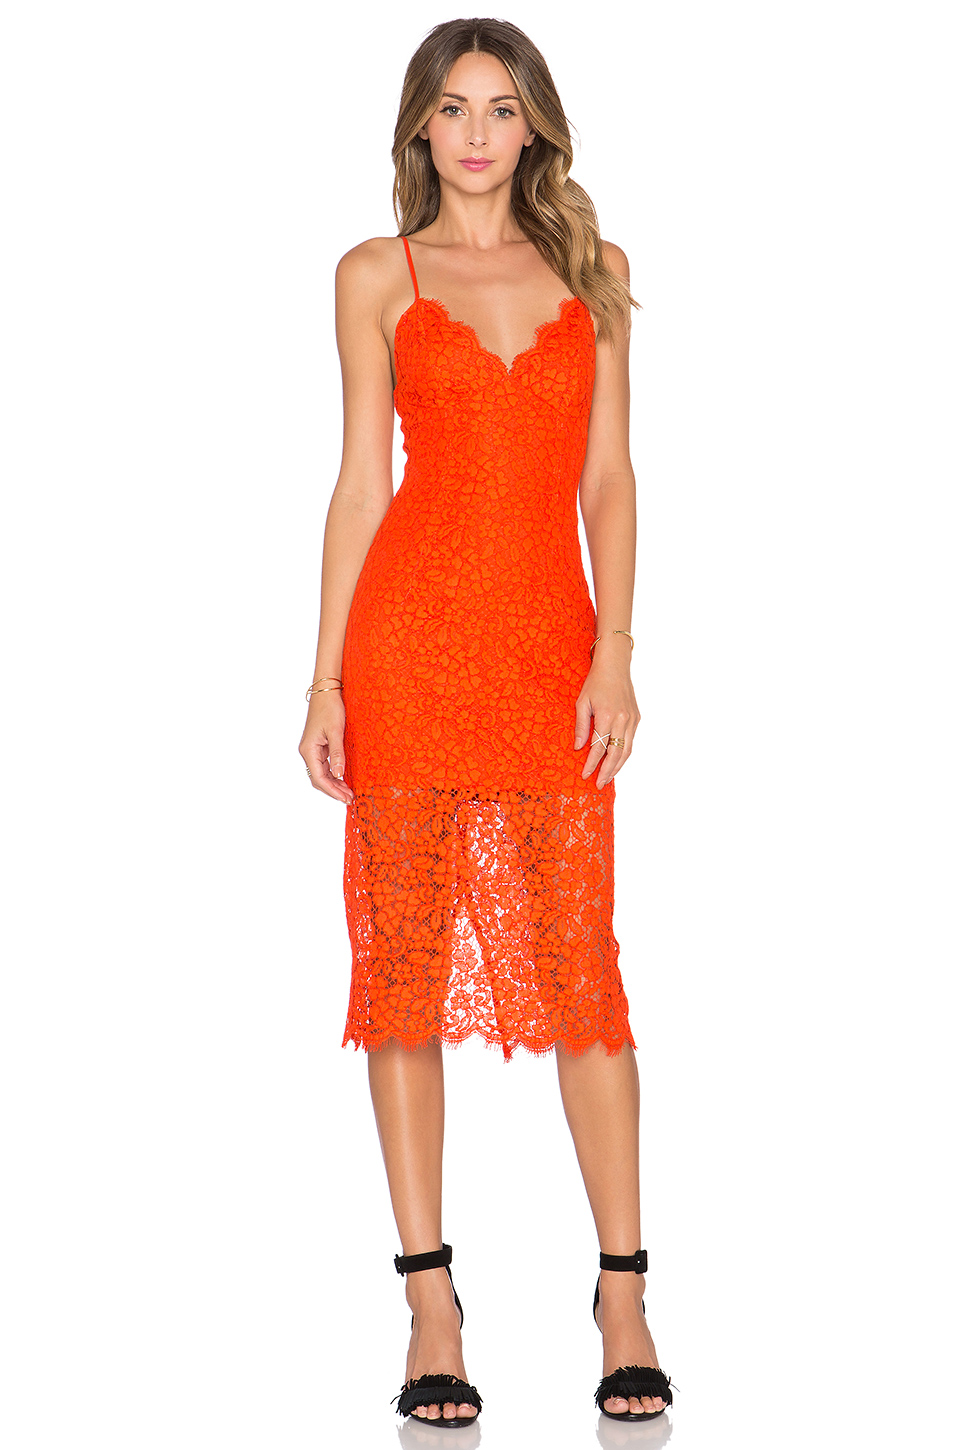 SIENNA Lace Dress $140